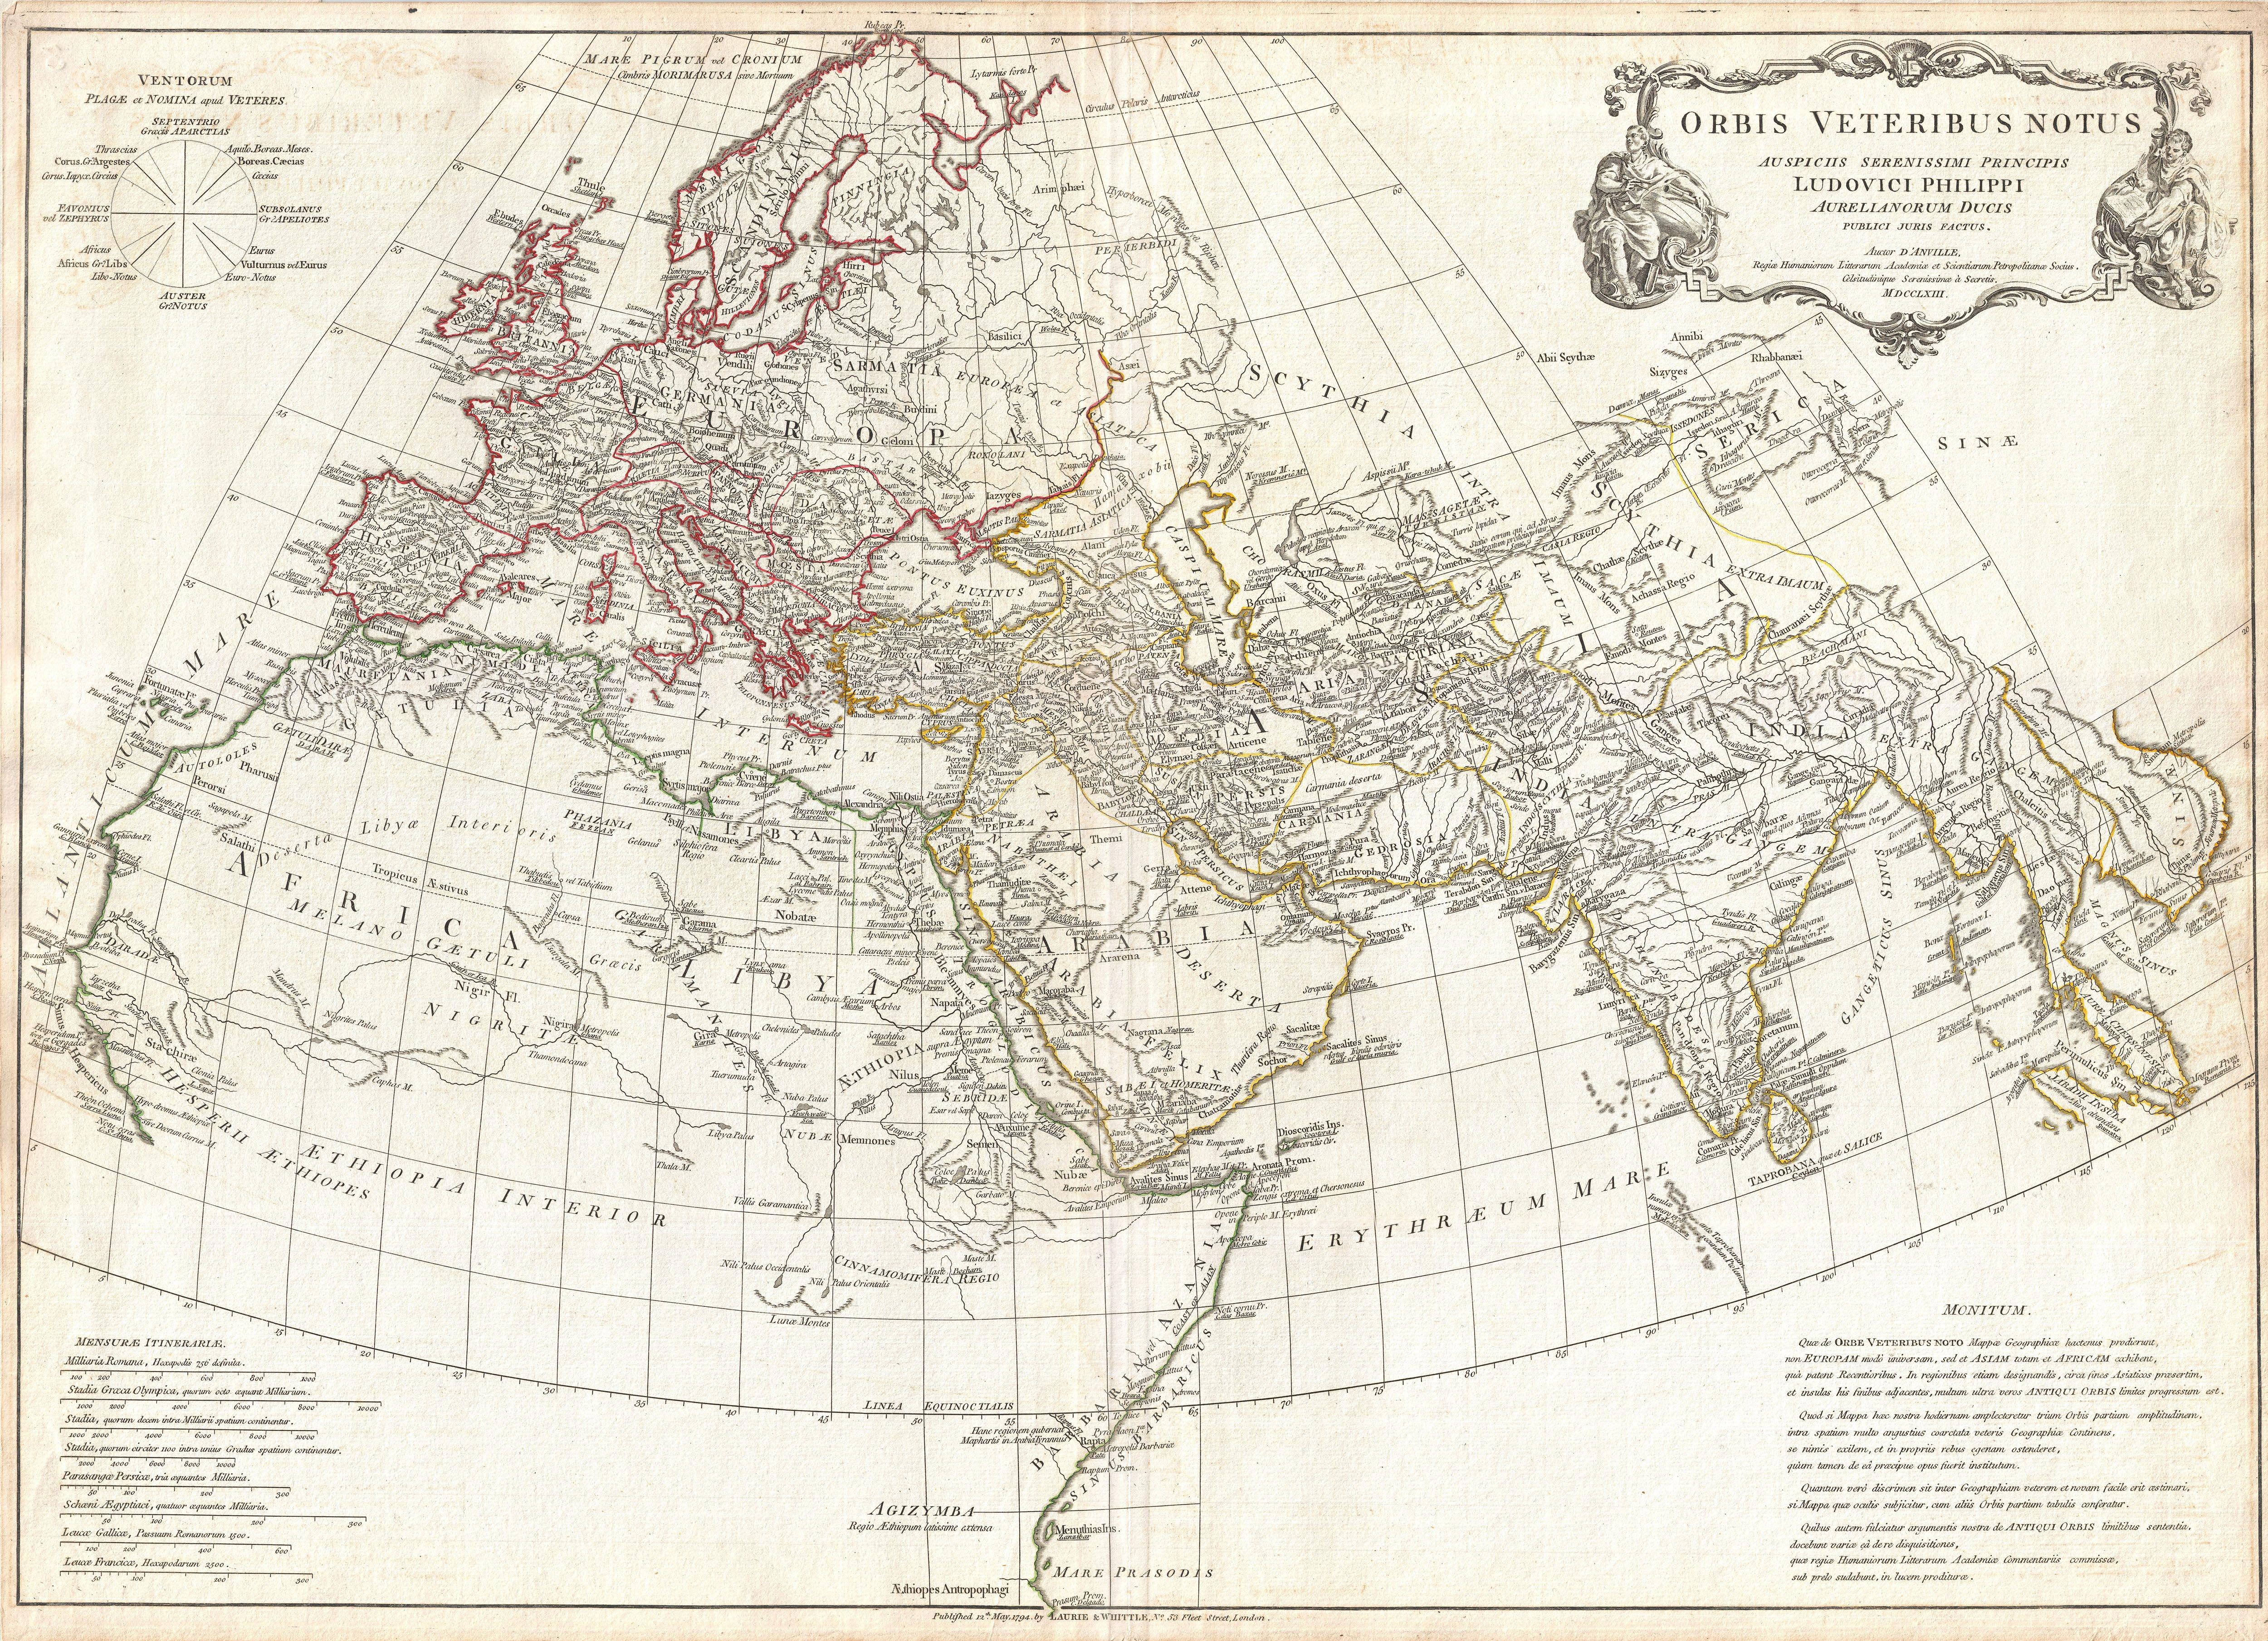 1000 images about Maps of the Classical World on Pinterest Maps Roman emp